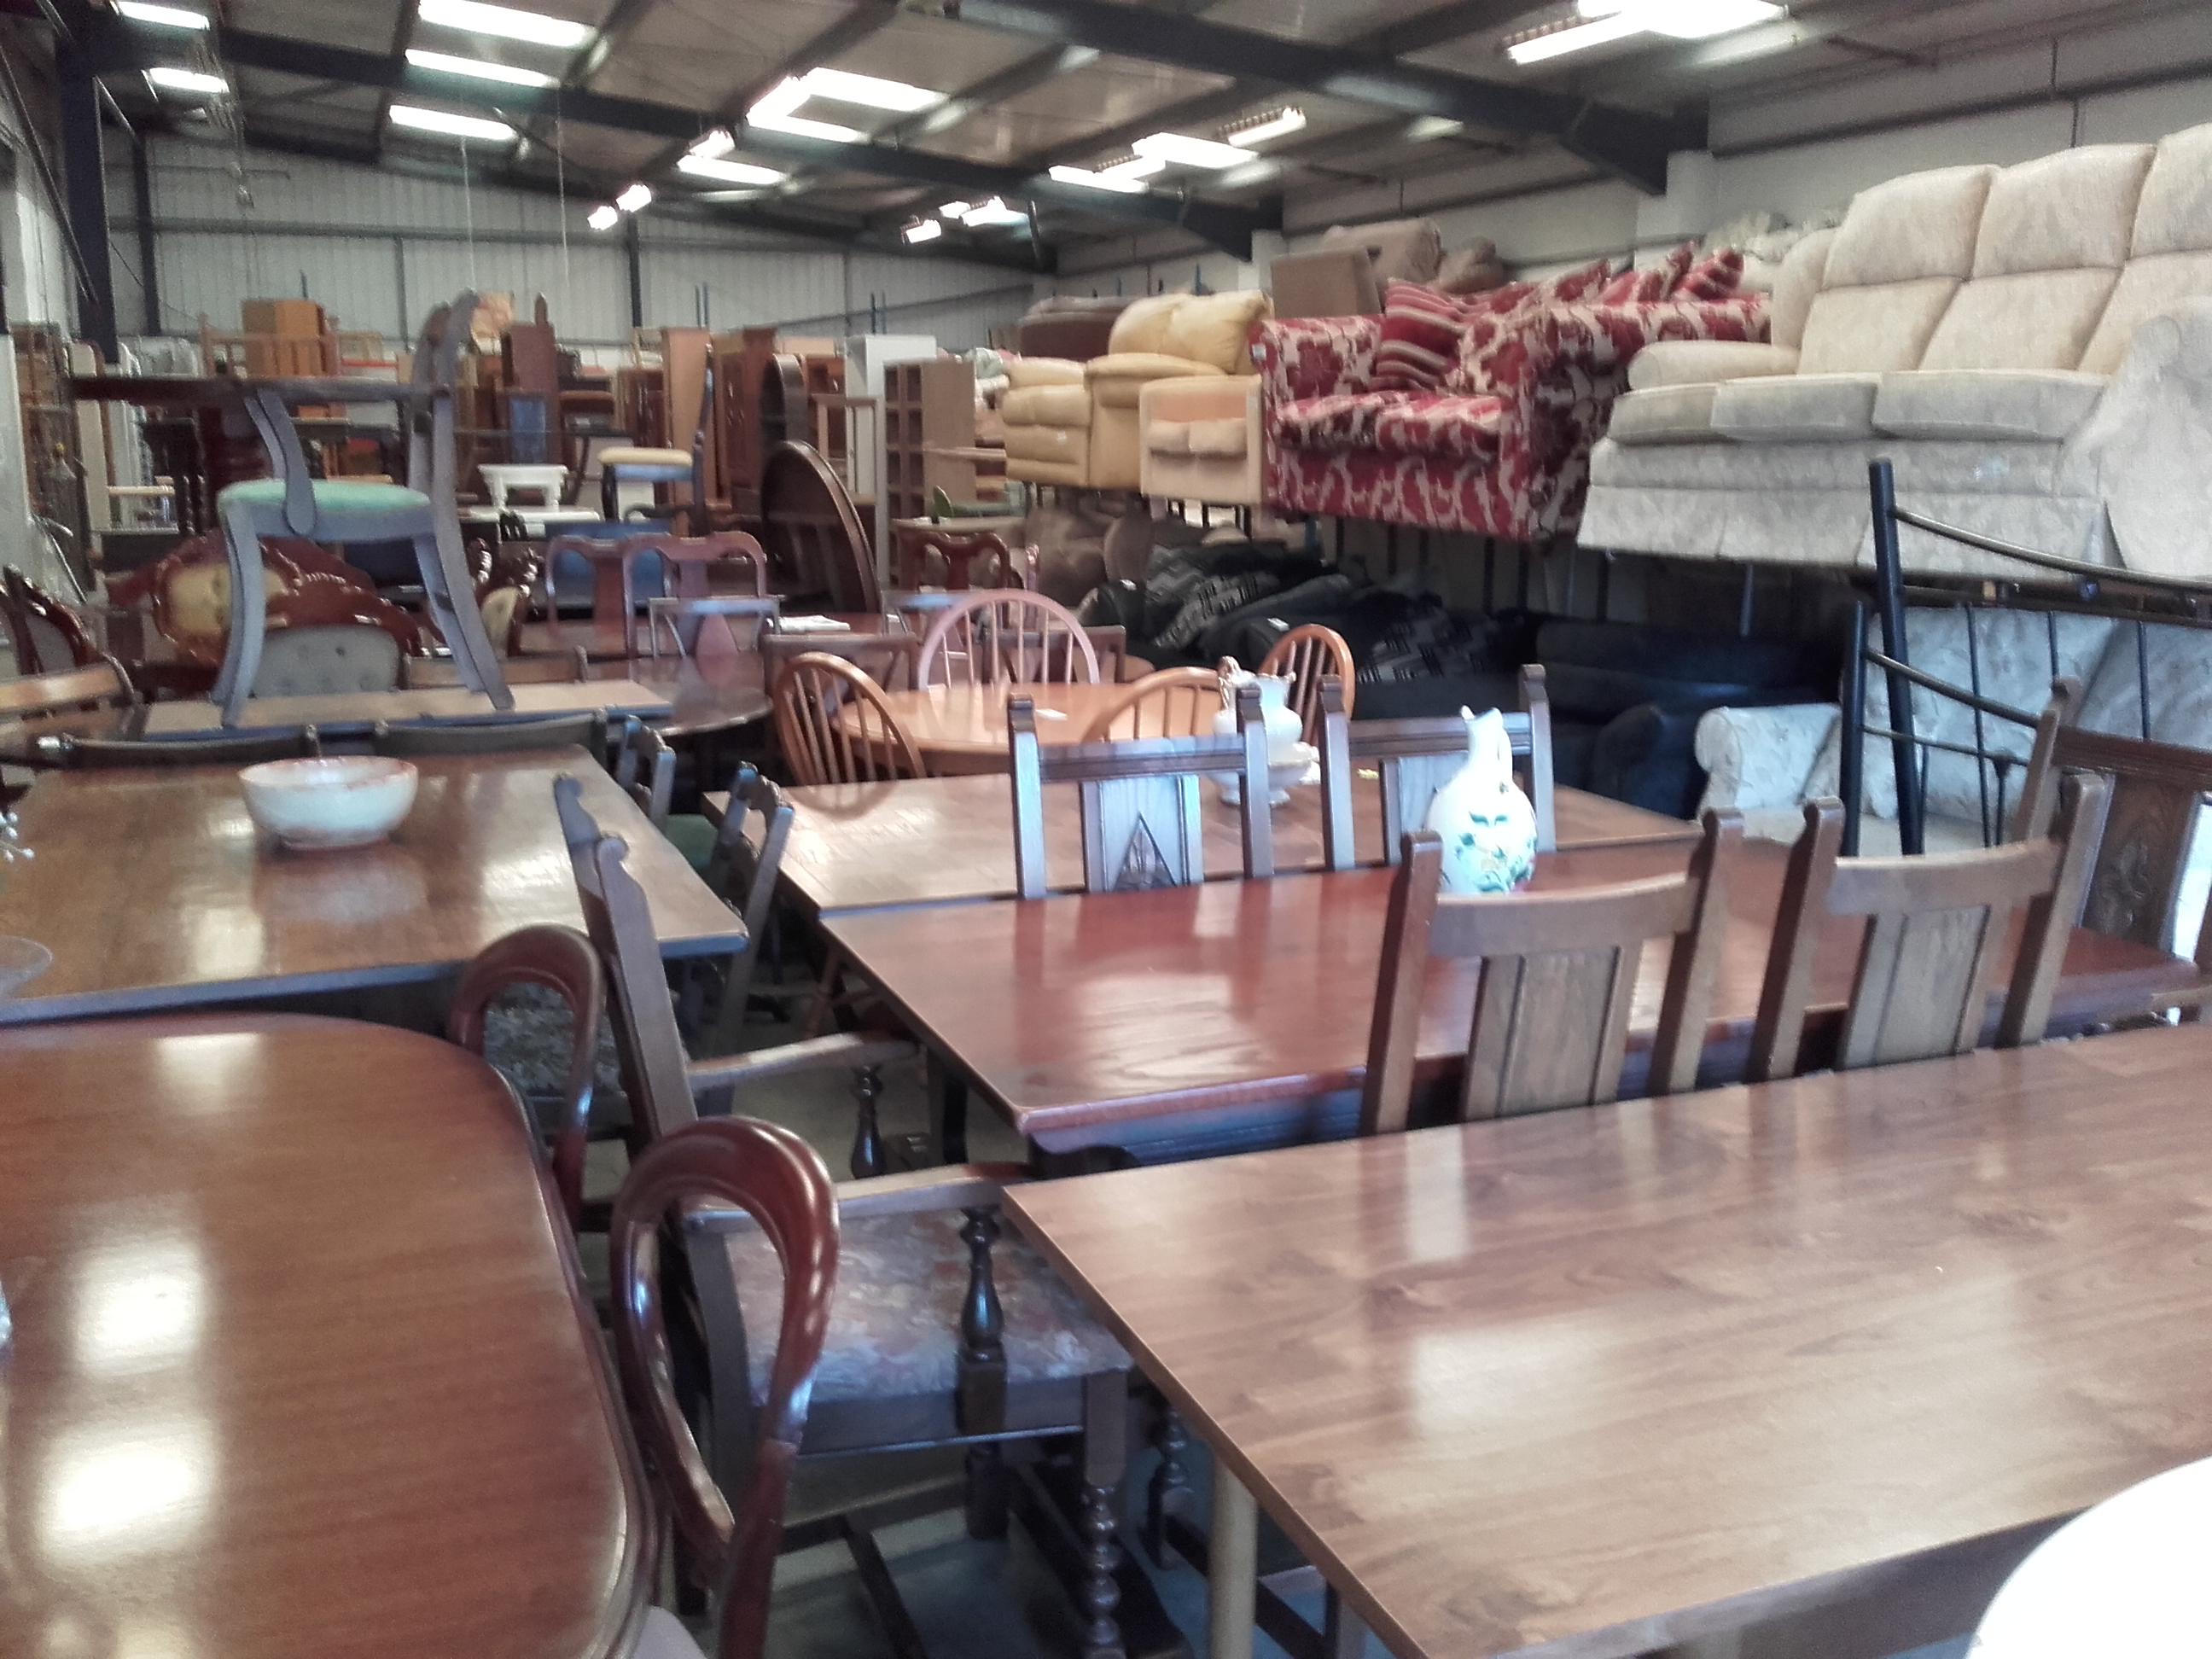 jacobs well furniture                 project, fairly priced furniture for everyone